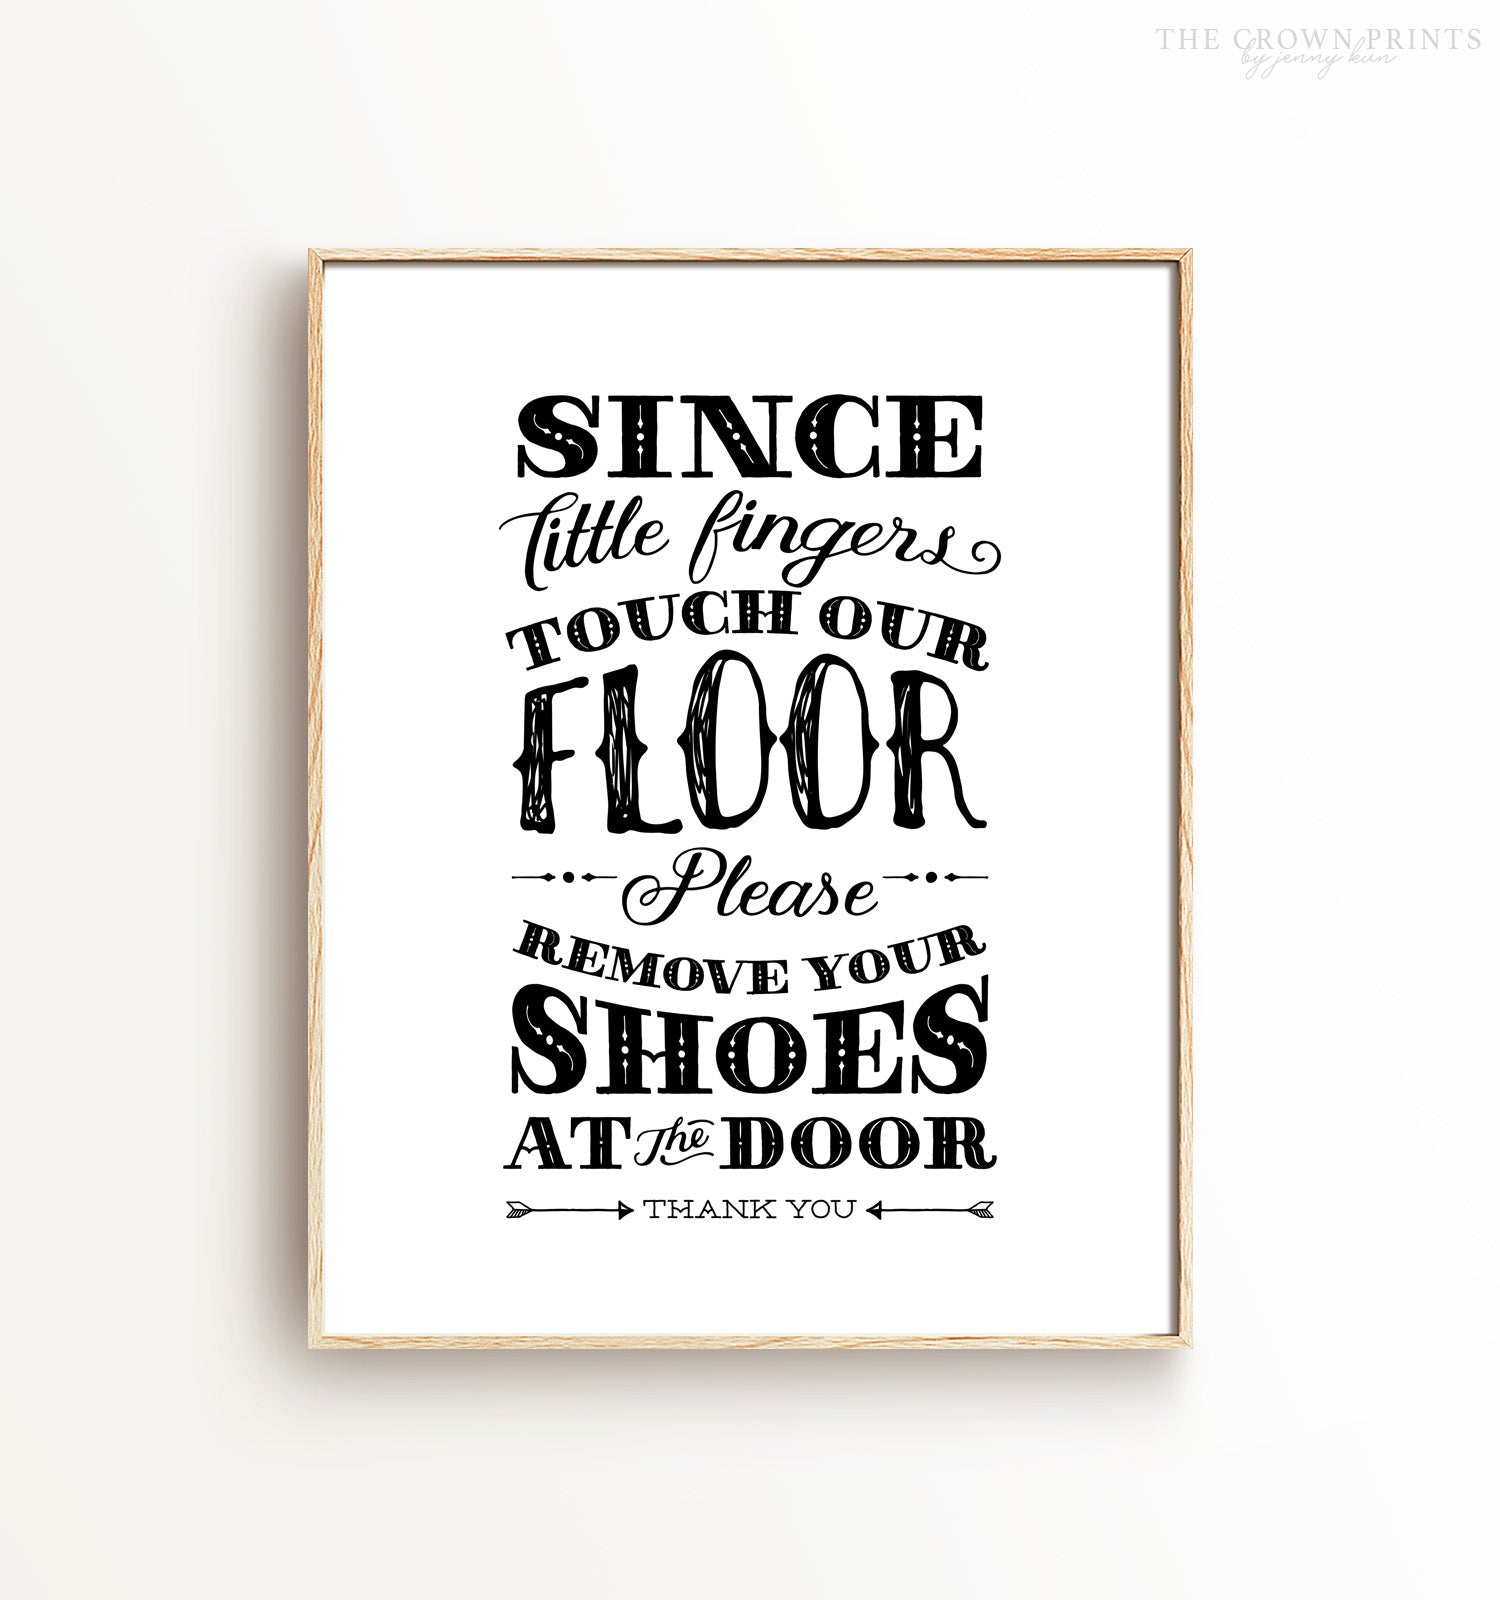 photo relating to Please Remove Your Shoes Sign Printable referred to as Footwear off symptoms - The Crown Prints